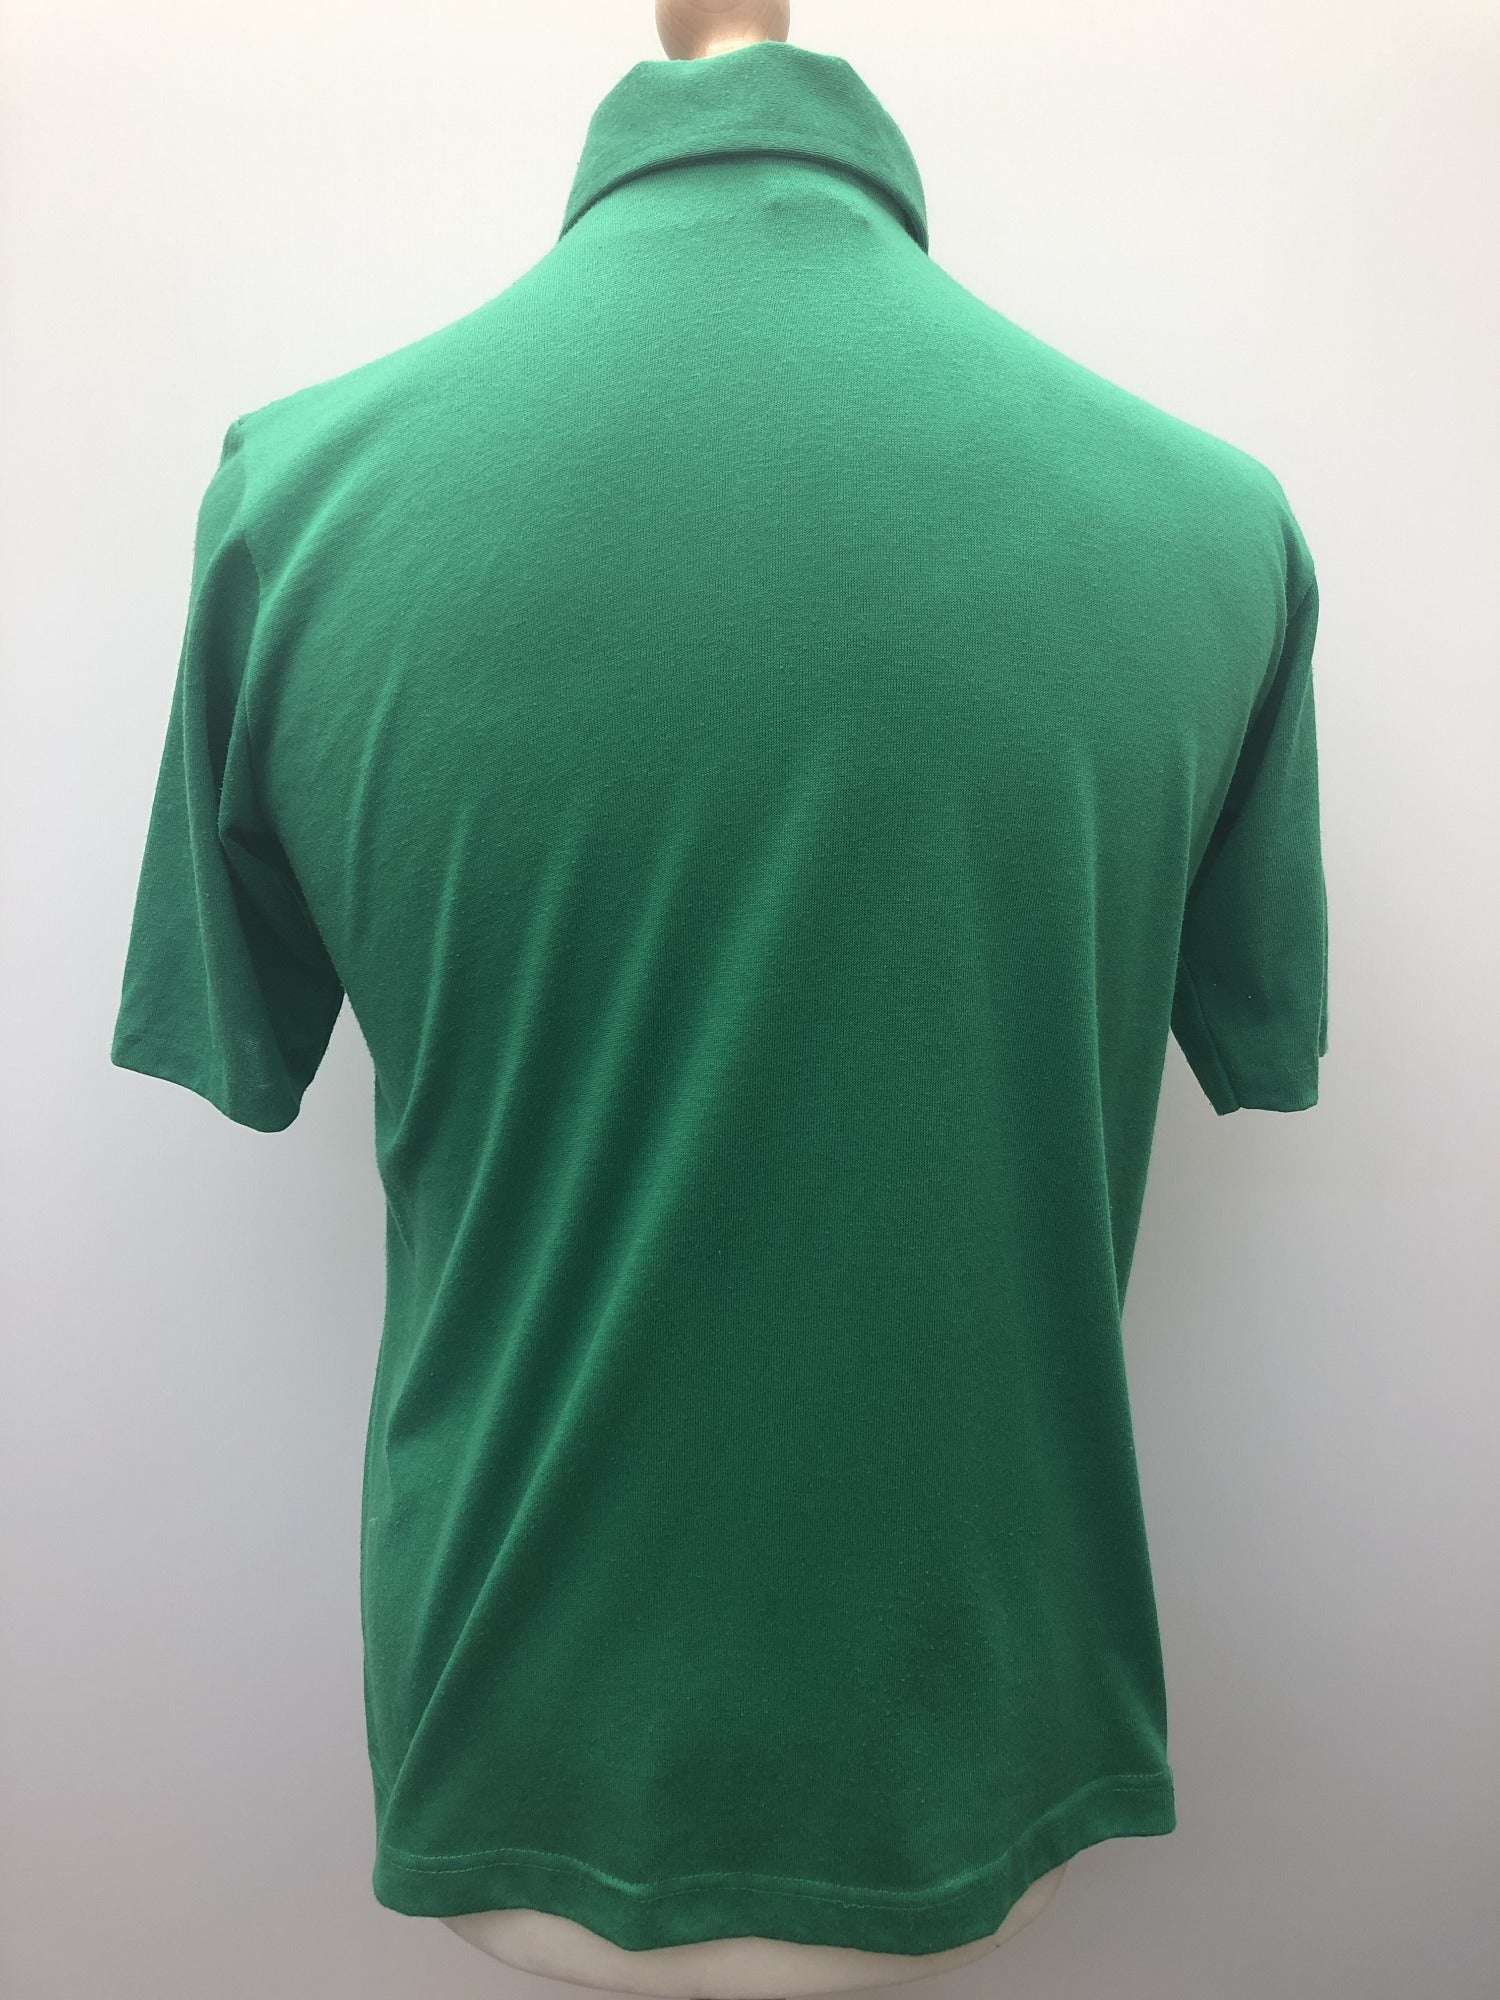 vintage  Urban Village Vintage  Three button  sportswear  sports polo  S  polo top  mens  Hartwell Sports  Green Urban village vintage